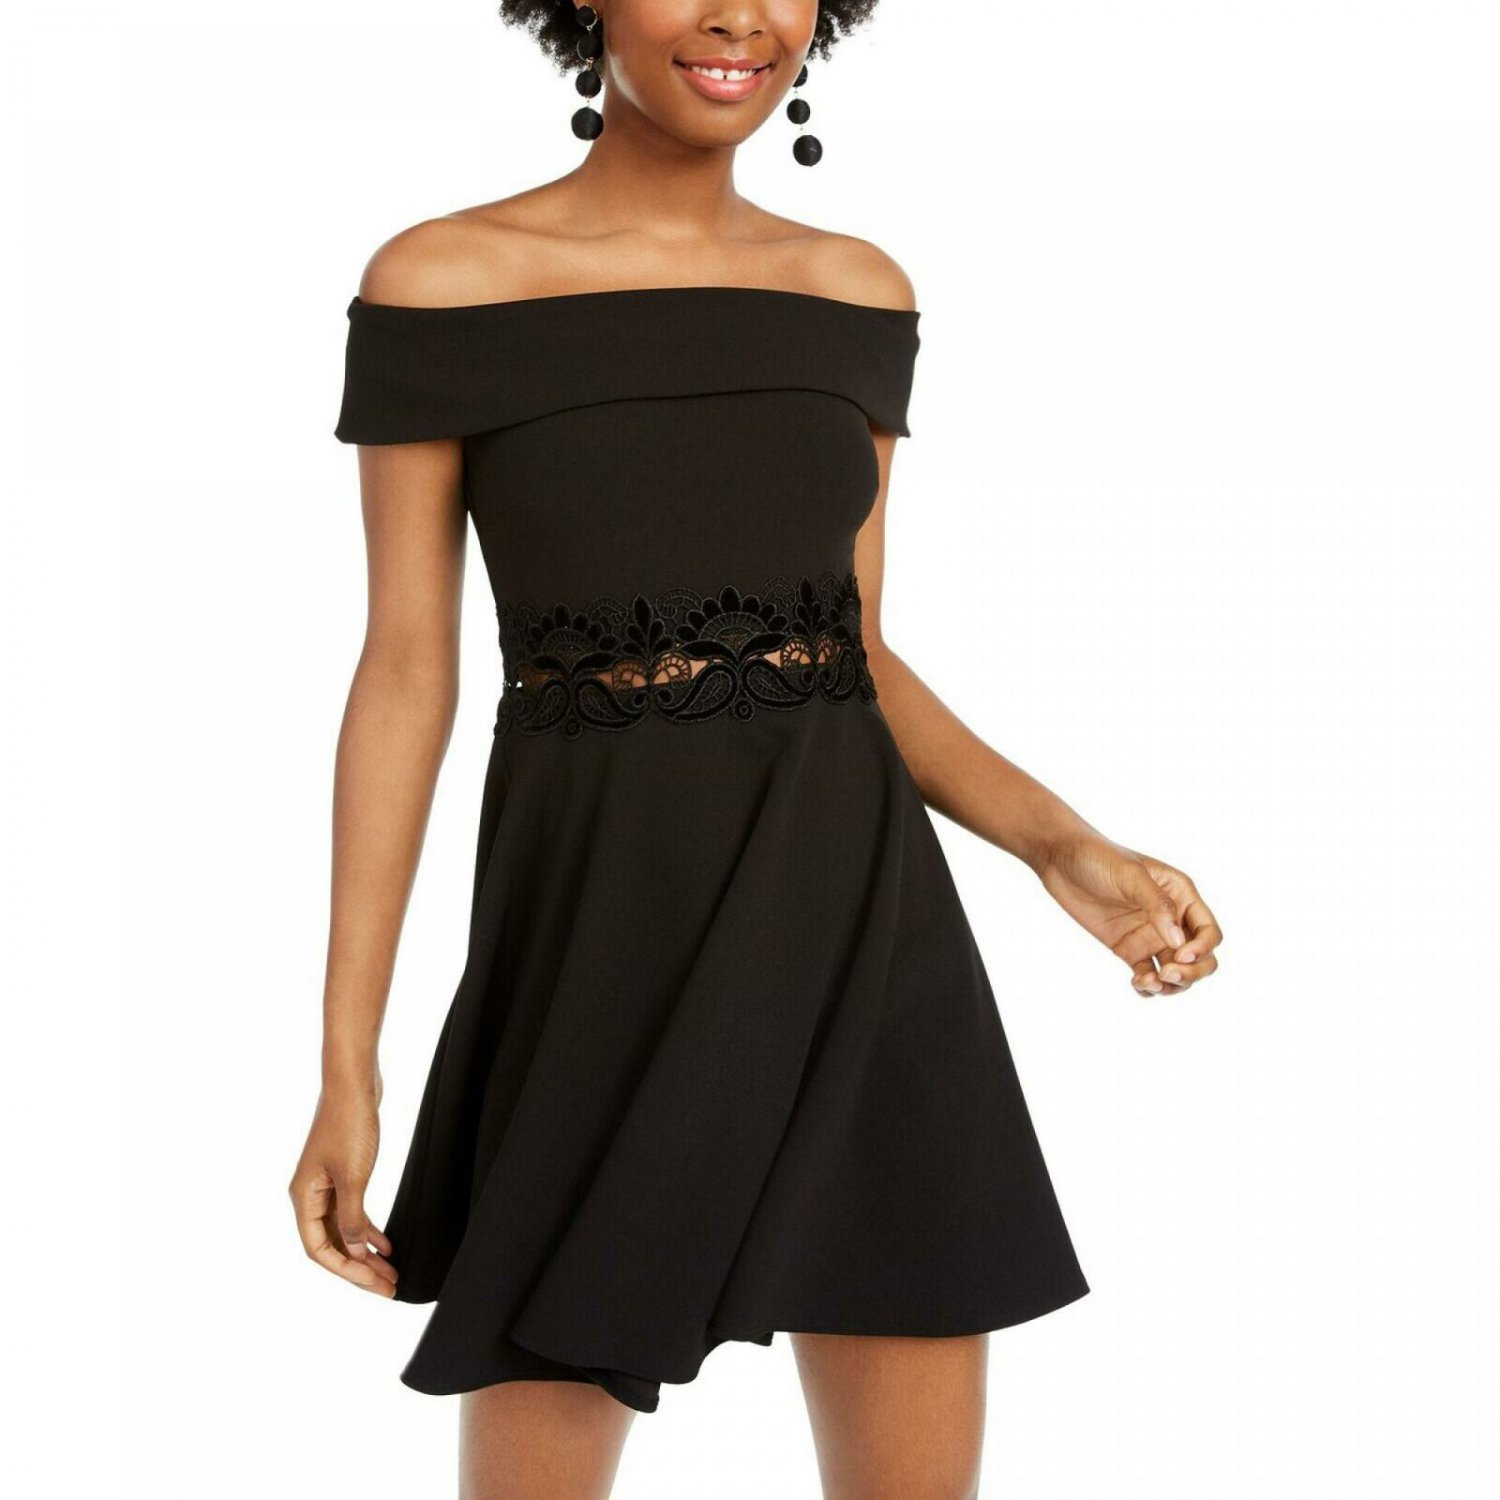 B. Darlin Women's Junior Fit Off The Shoulder Fit and Flare Dress 1/2 Black